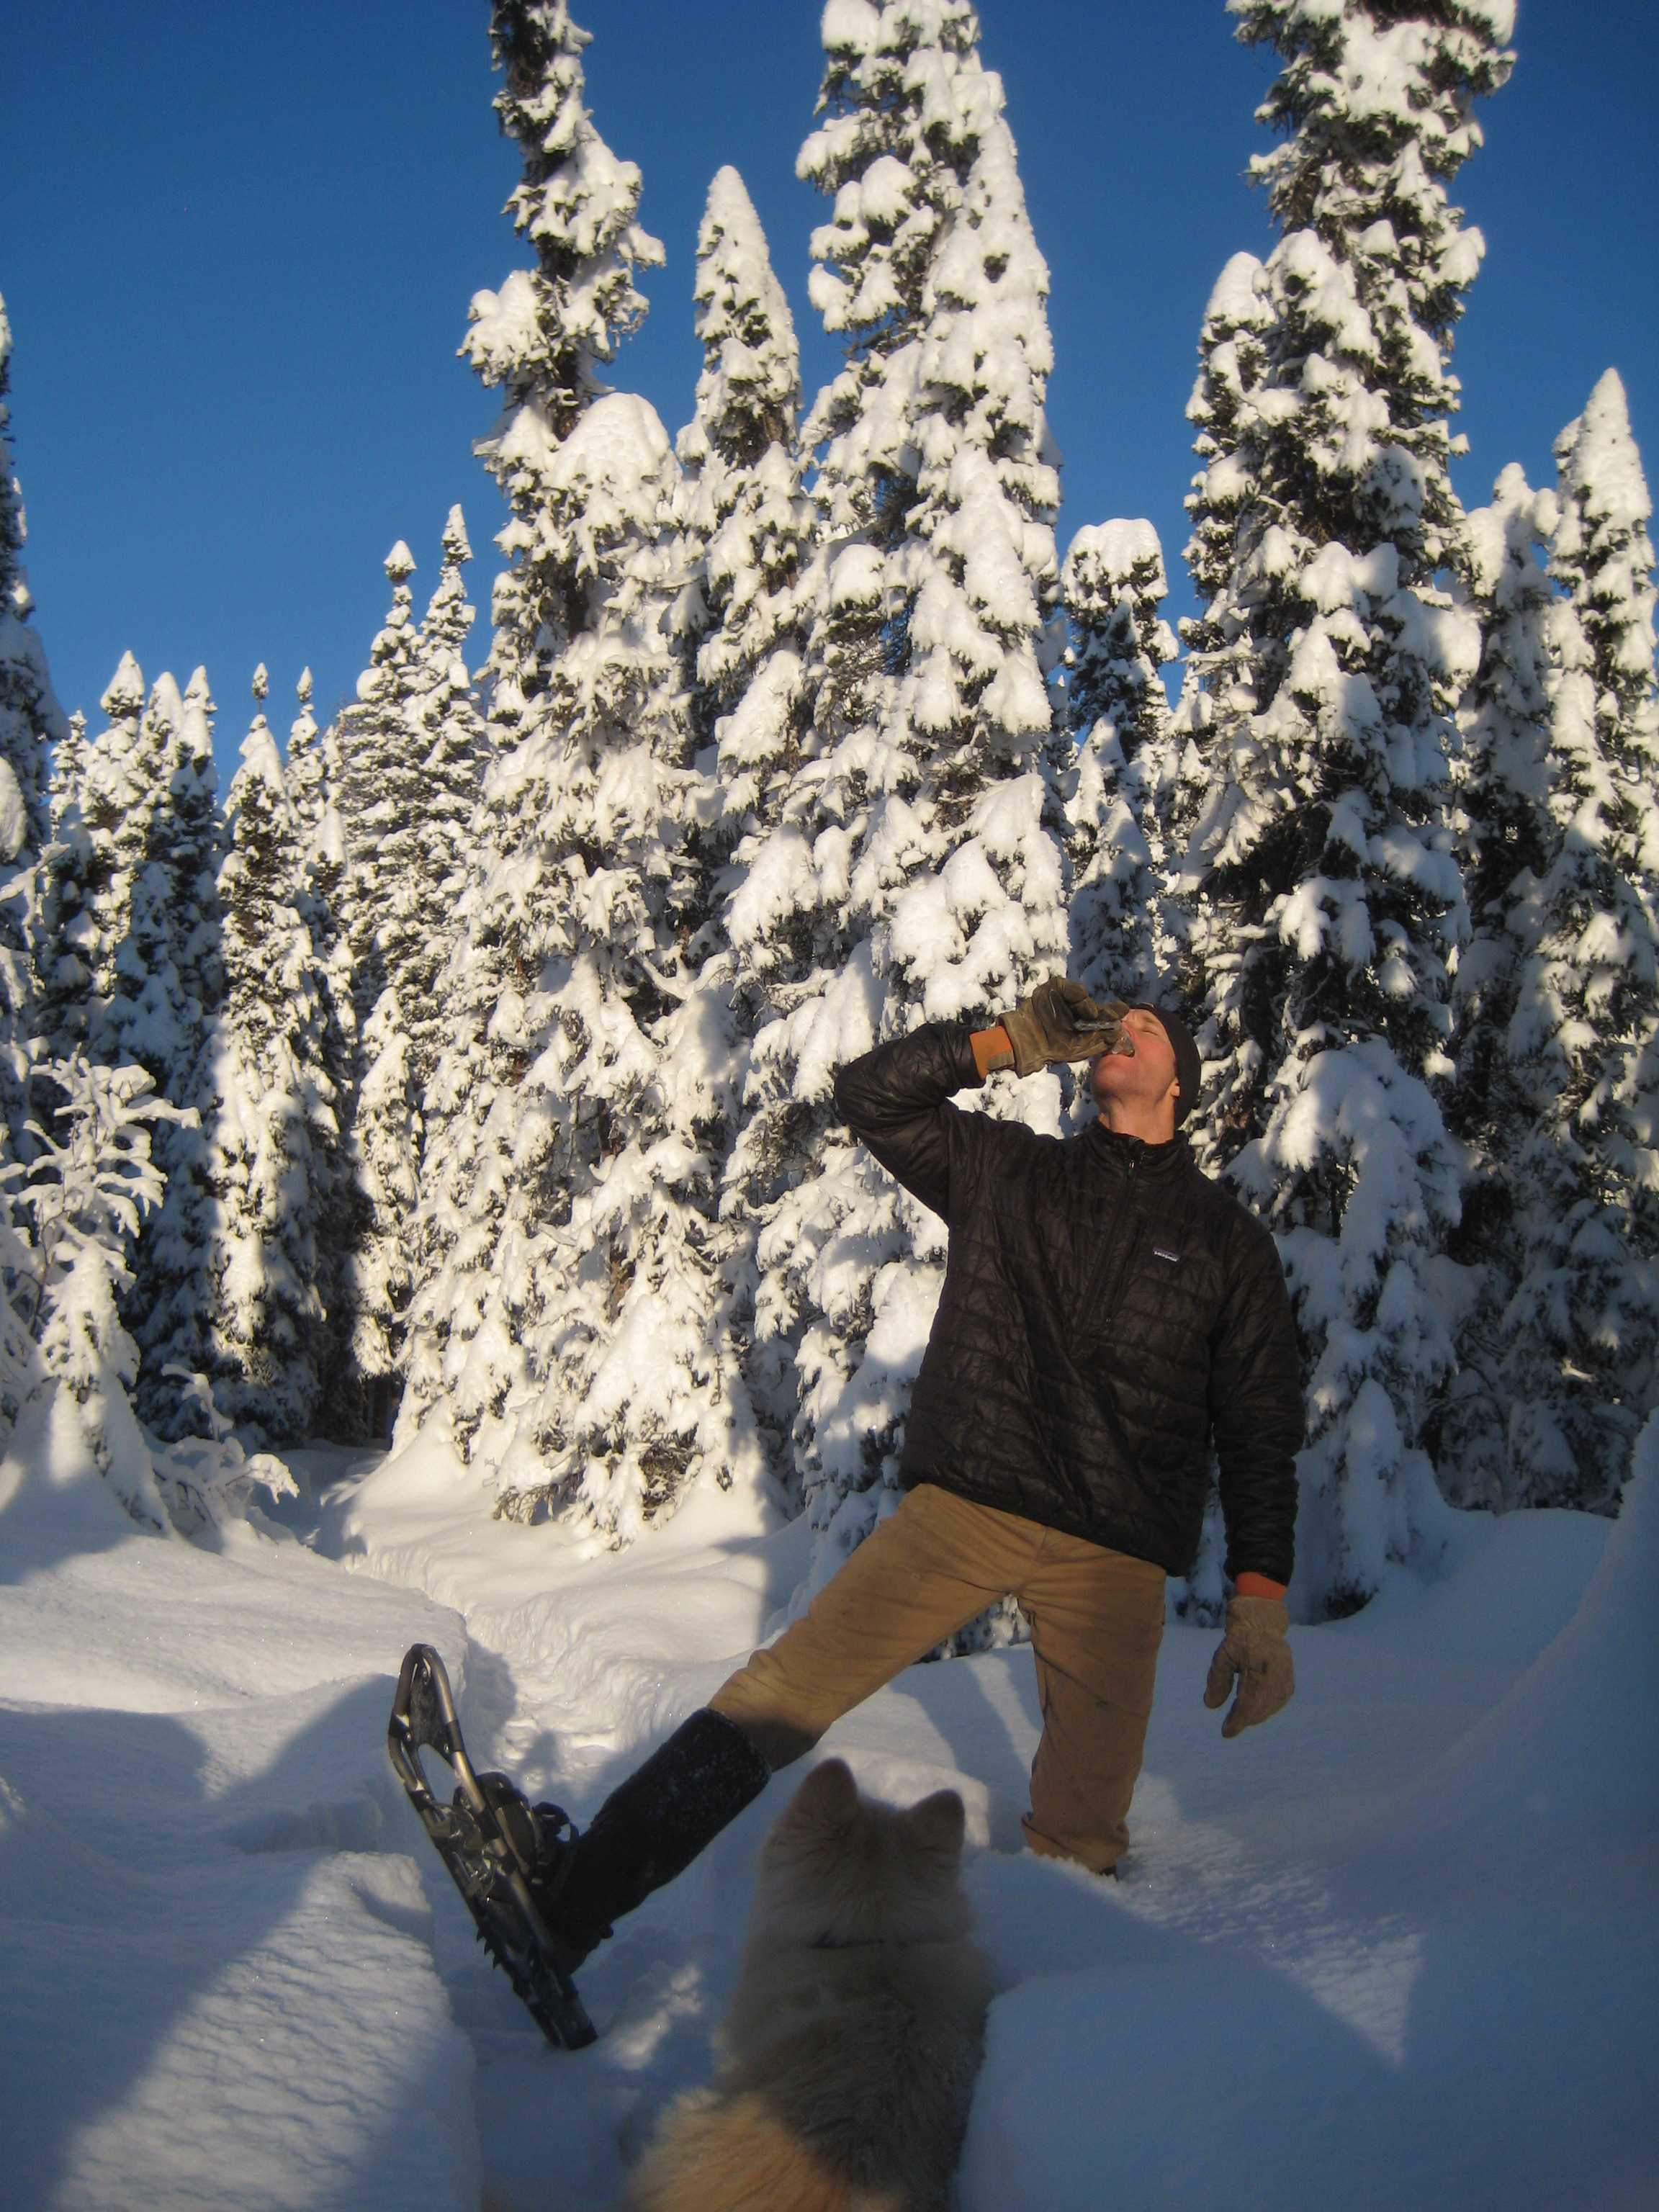 Kris from Talkeetna, Alaska sent thesephotos from an afternoon outing on snowshoes with his dog Kaiya.